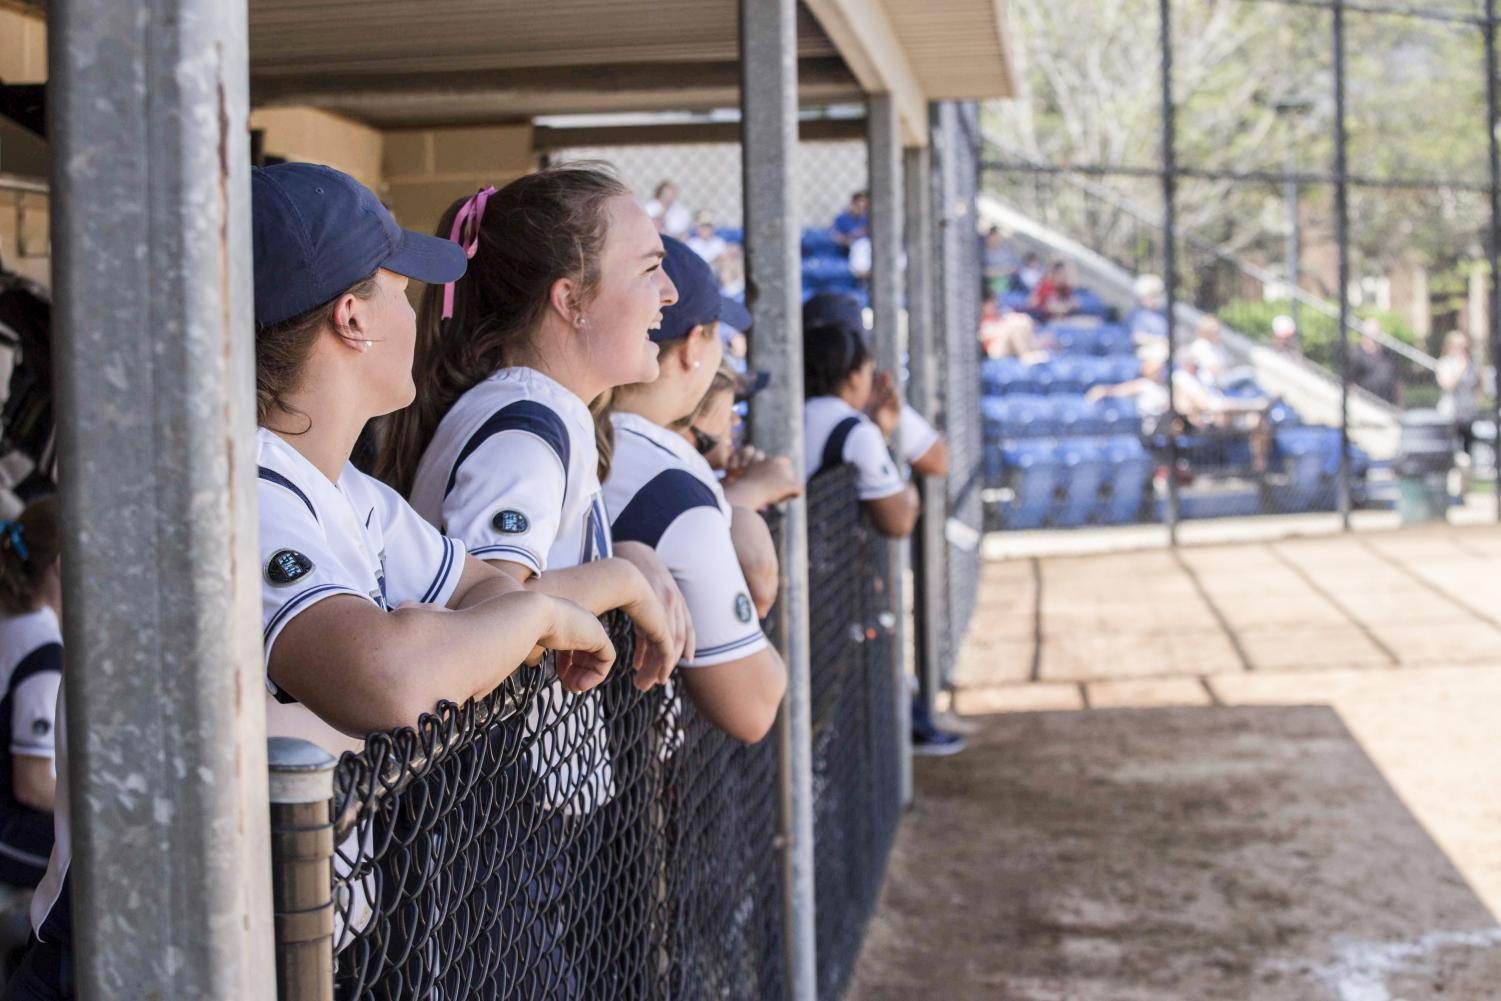 Softball bounced back from a tough week against Emory, facing a dominant series against Brandeis with help from lights out starting pitching.